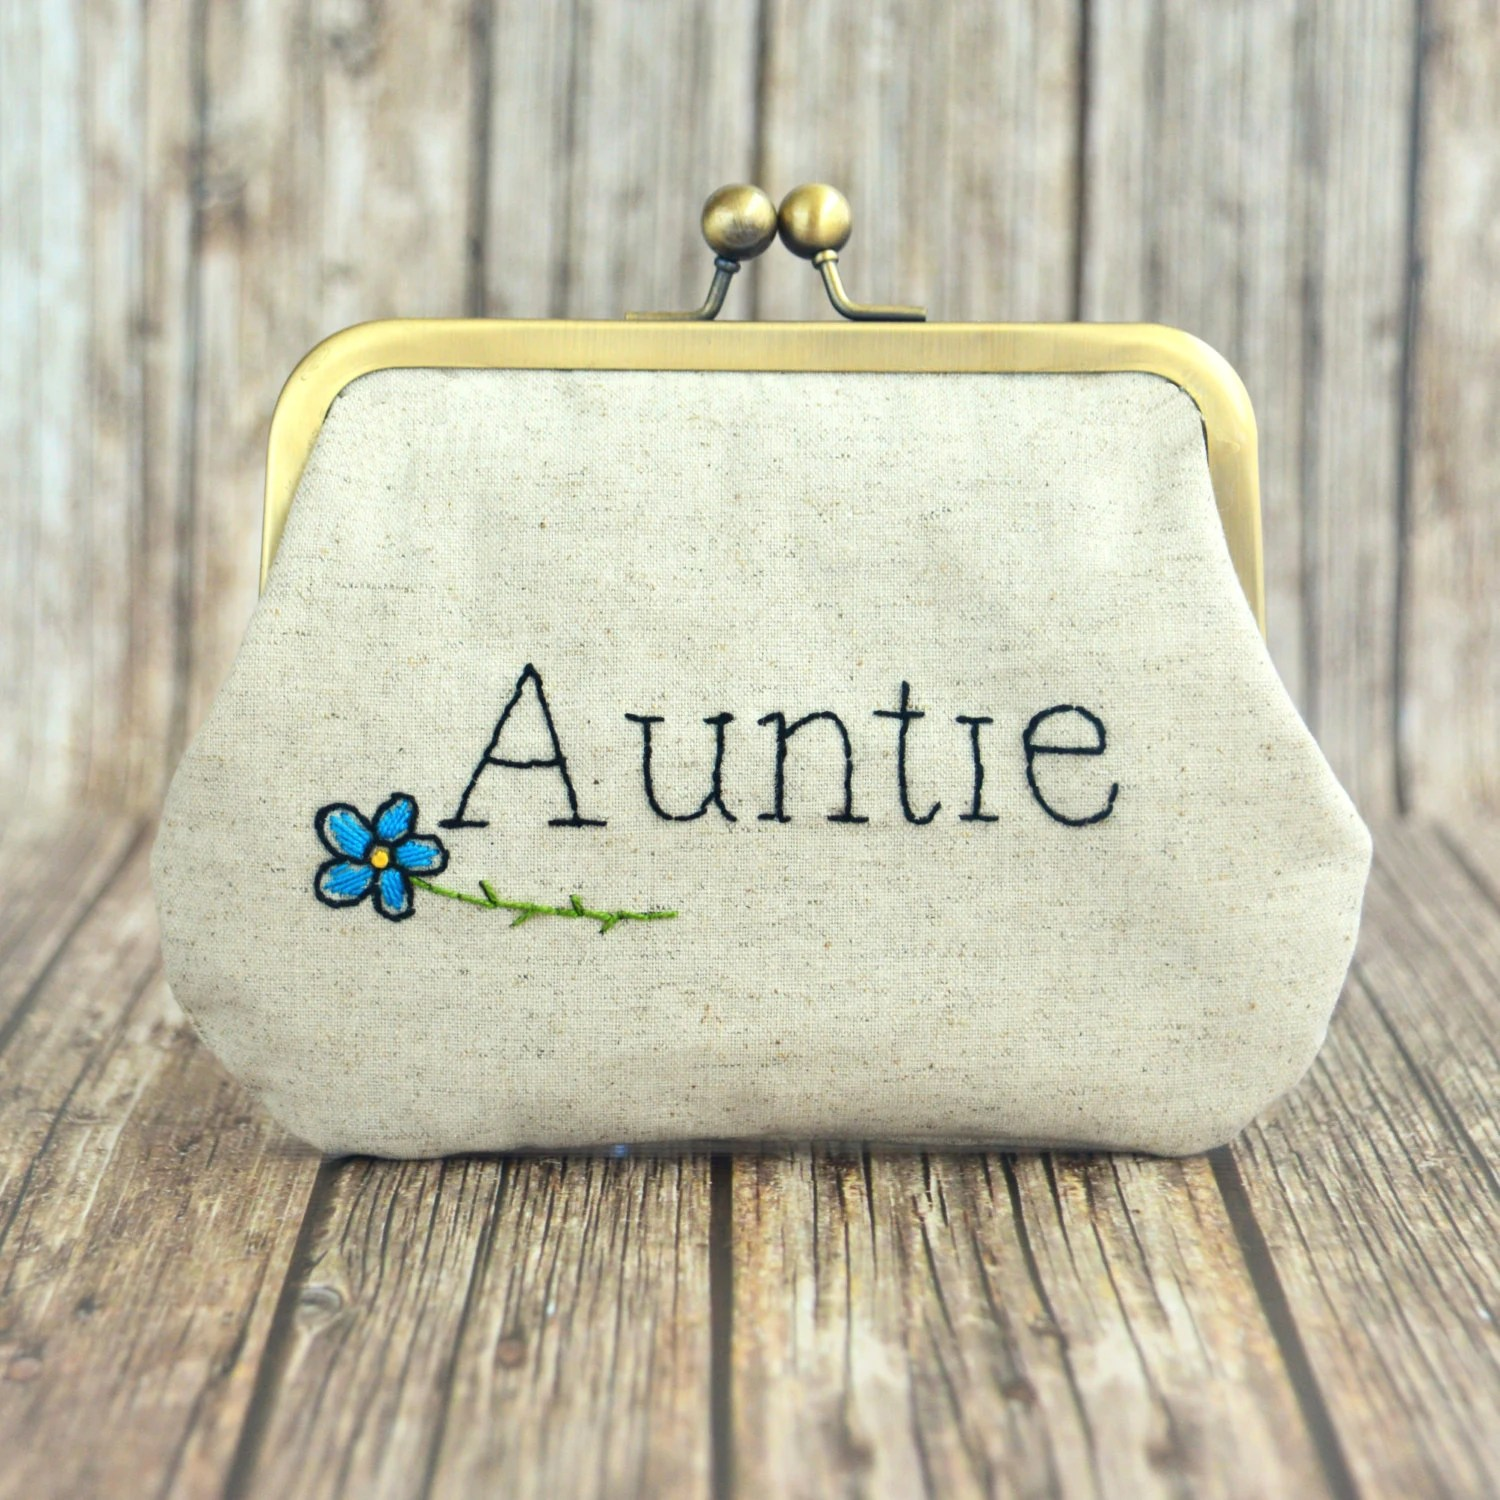 Unique Shower Hostess Gift Baby Shower Thank You by BagsCloset